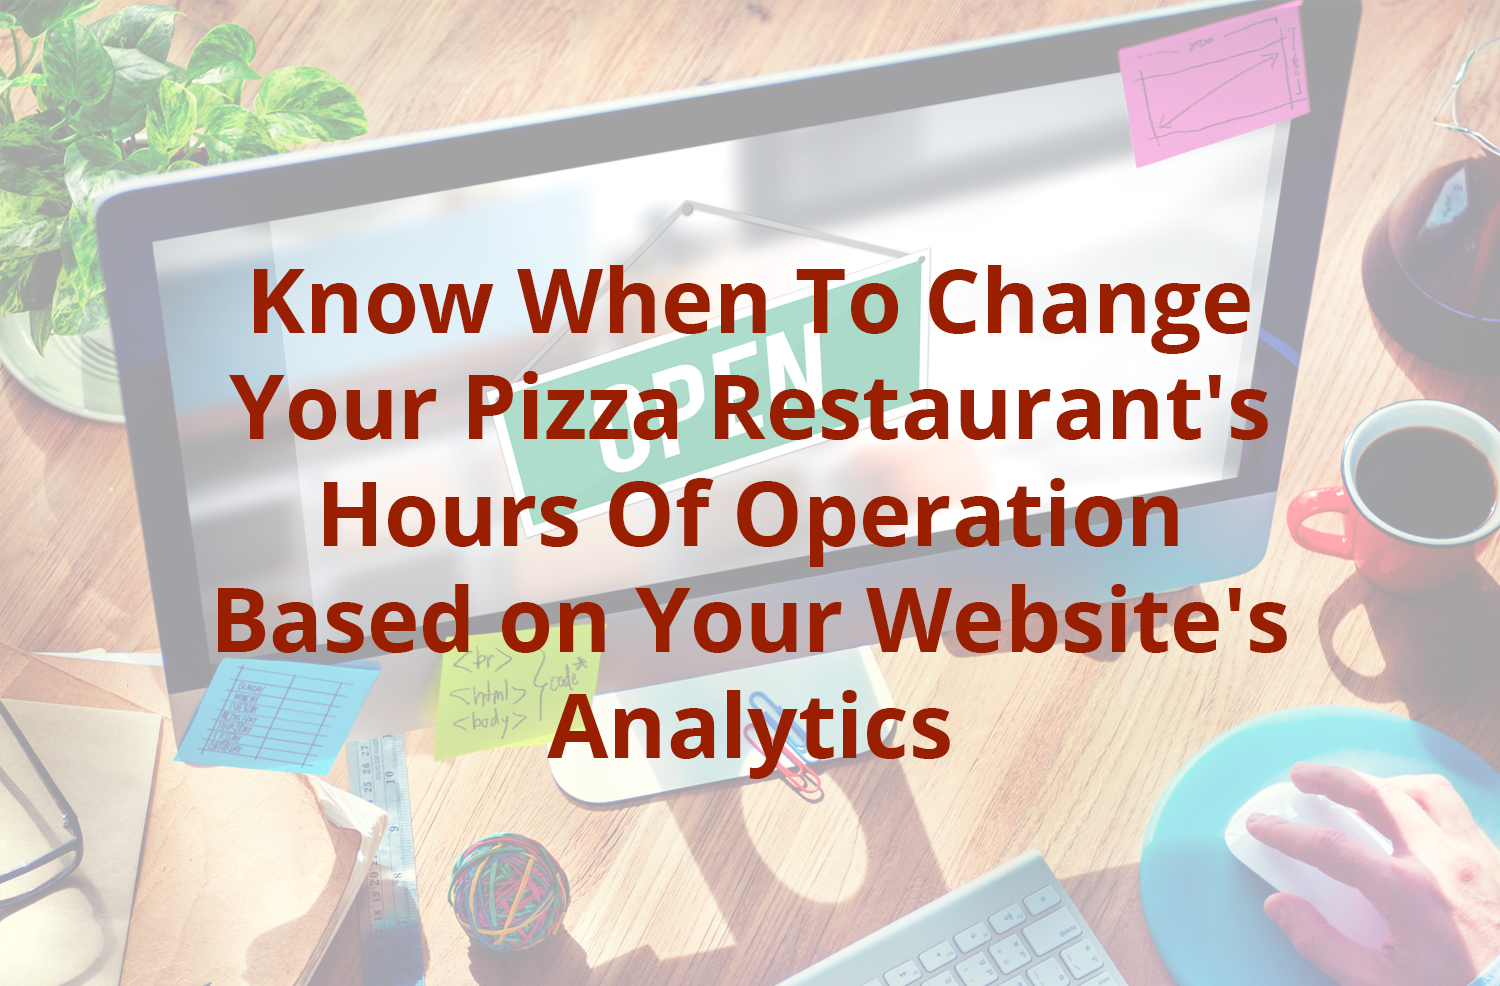 Know When To Change Your Pizza Restaurant's Hours Of Operation Based on Your Website's Analytics